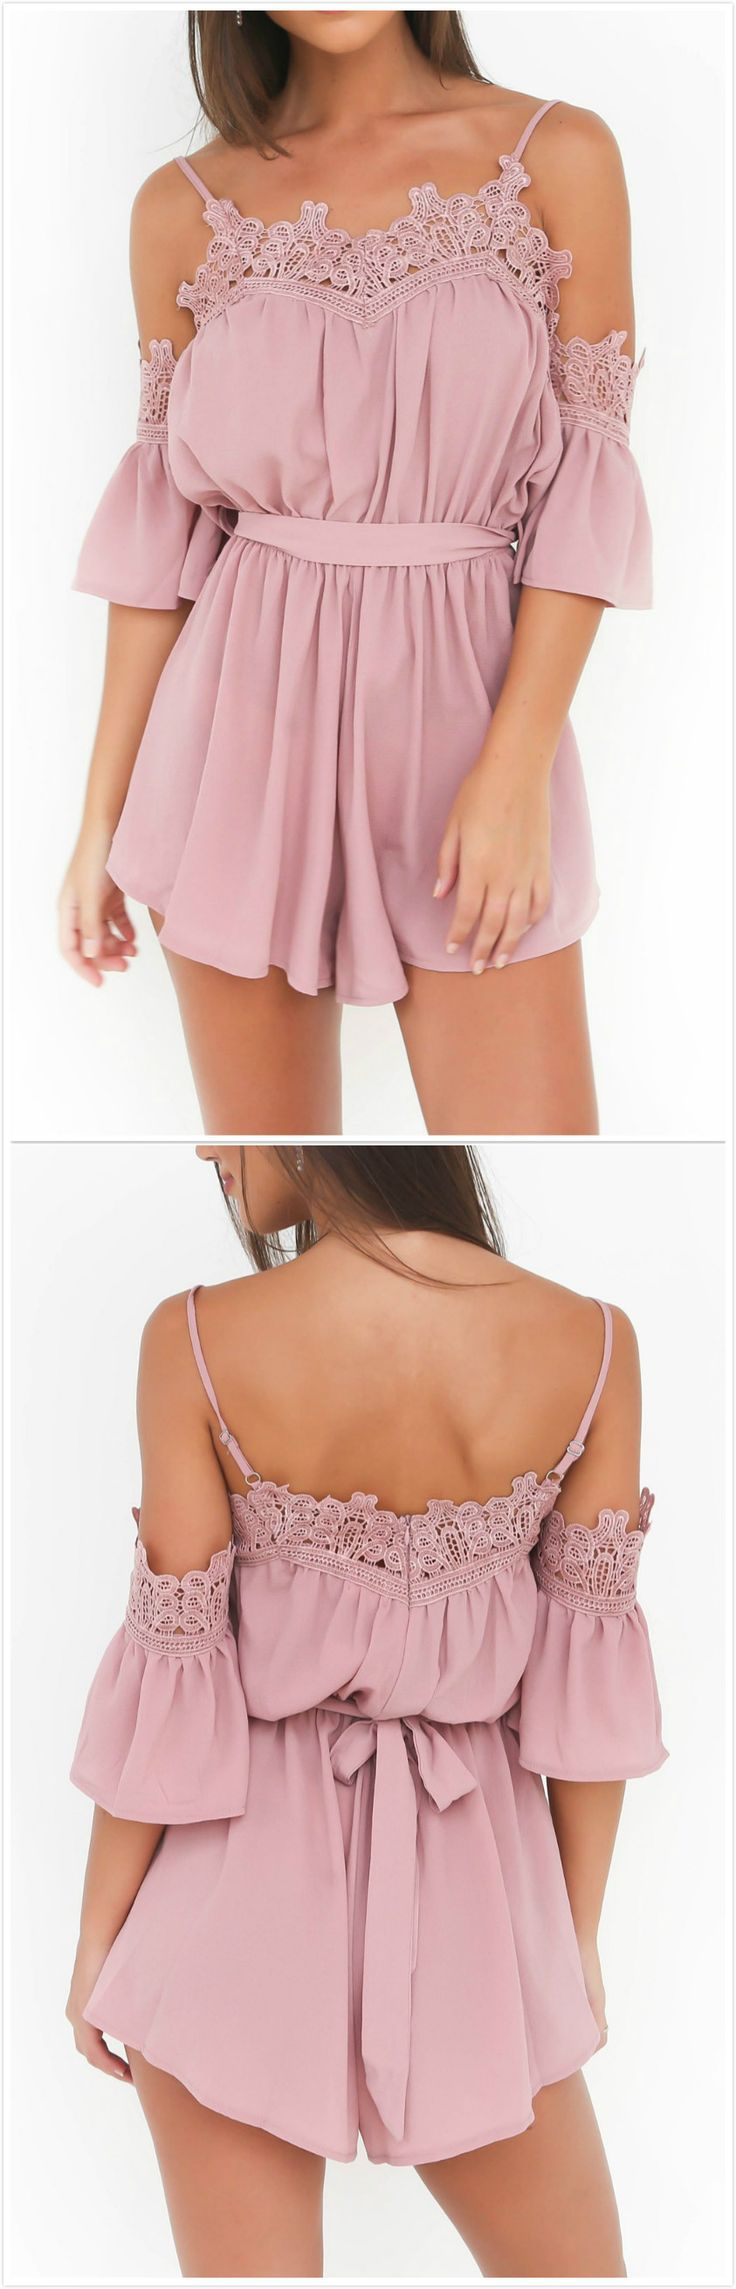 Blush color romper with lace details